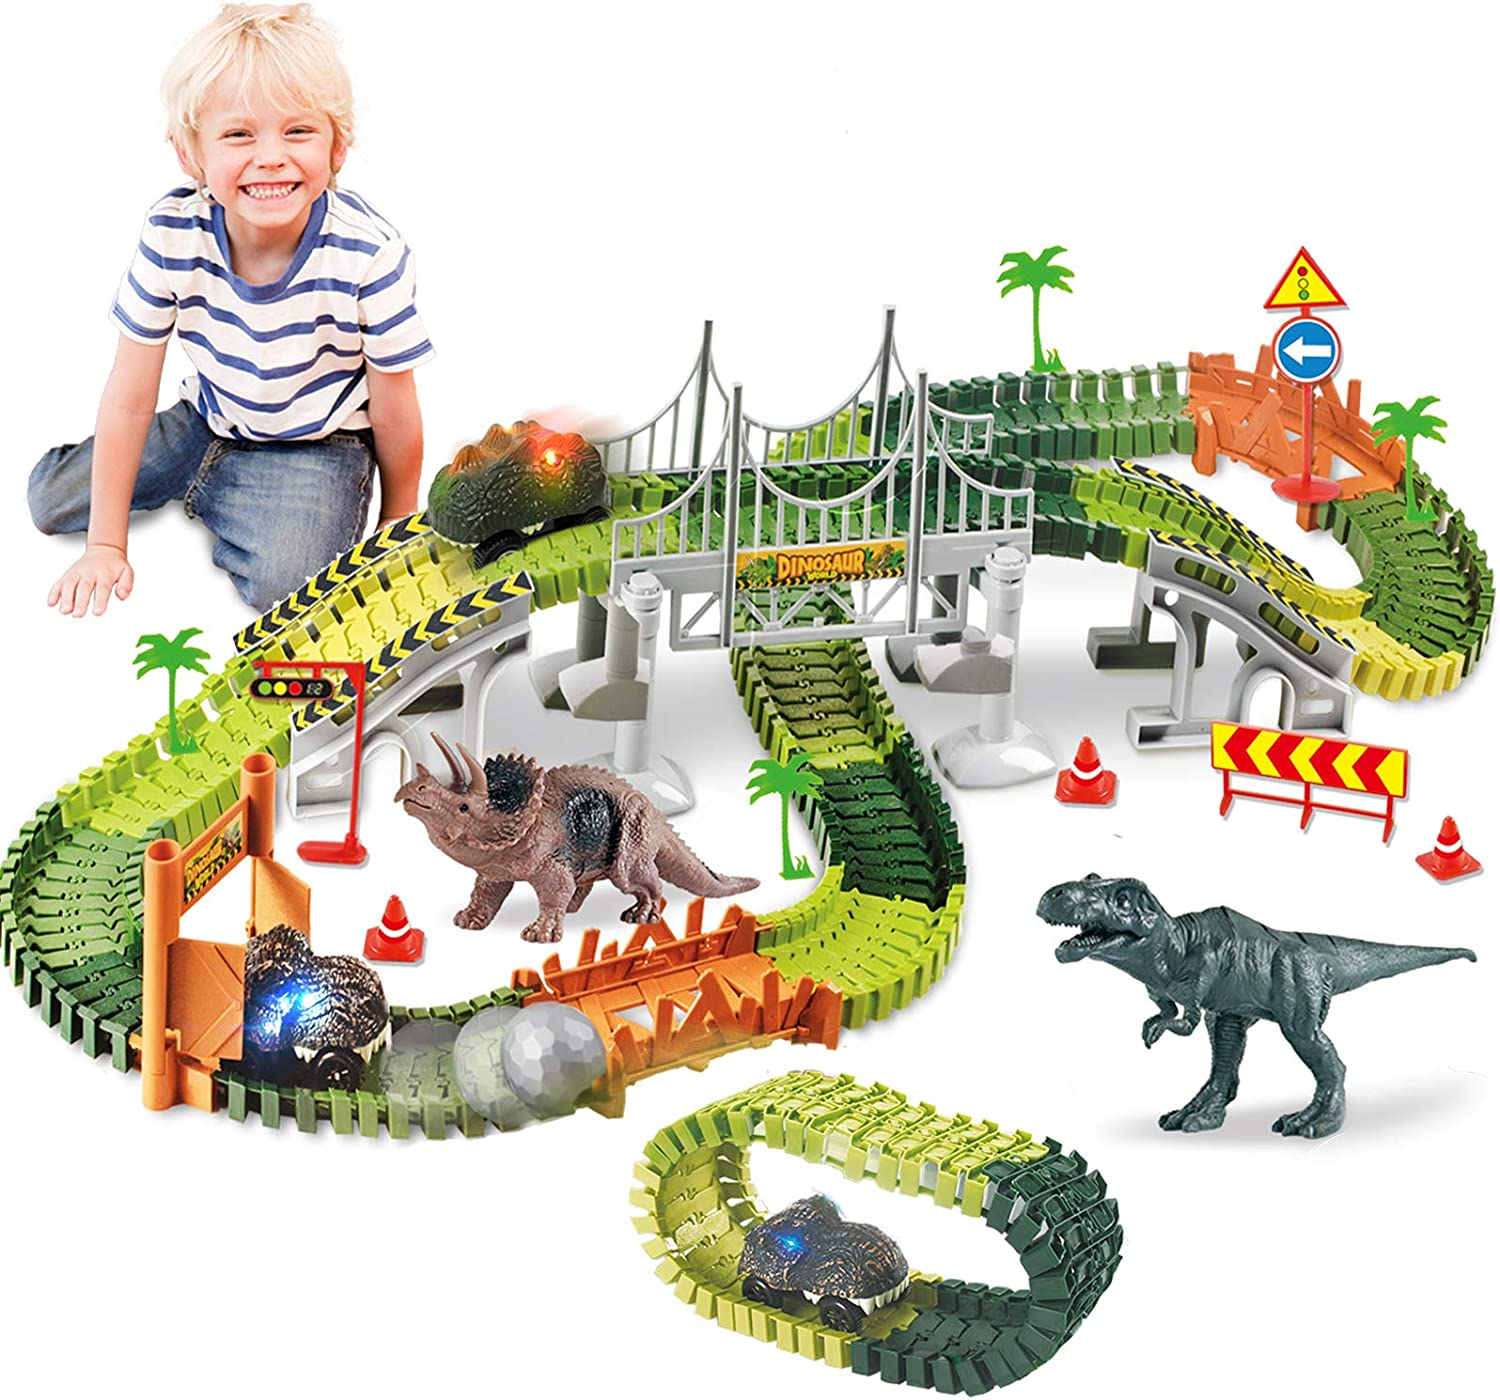 Dinosaur toy set flexible race car tracks 142 pcs  compatible with Magic tracks